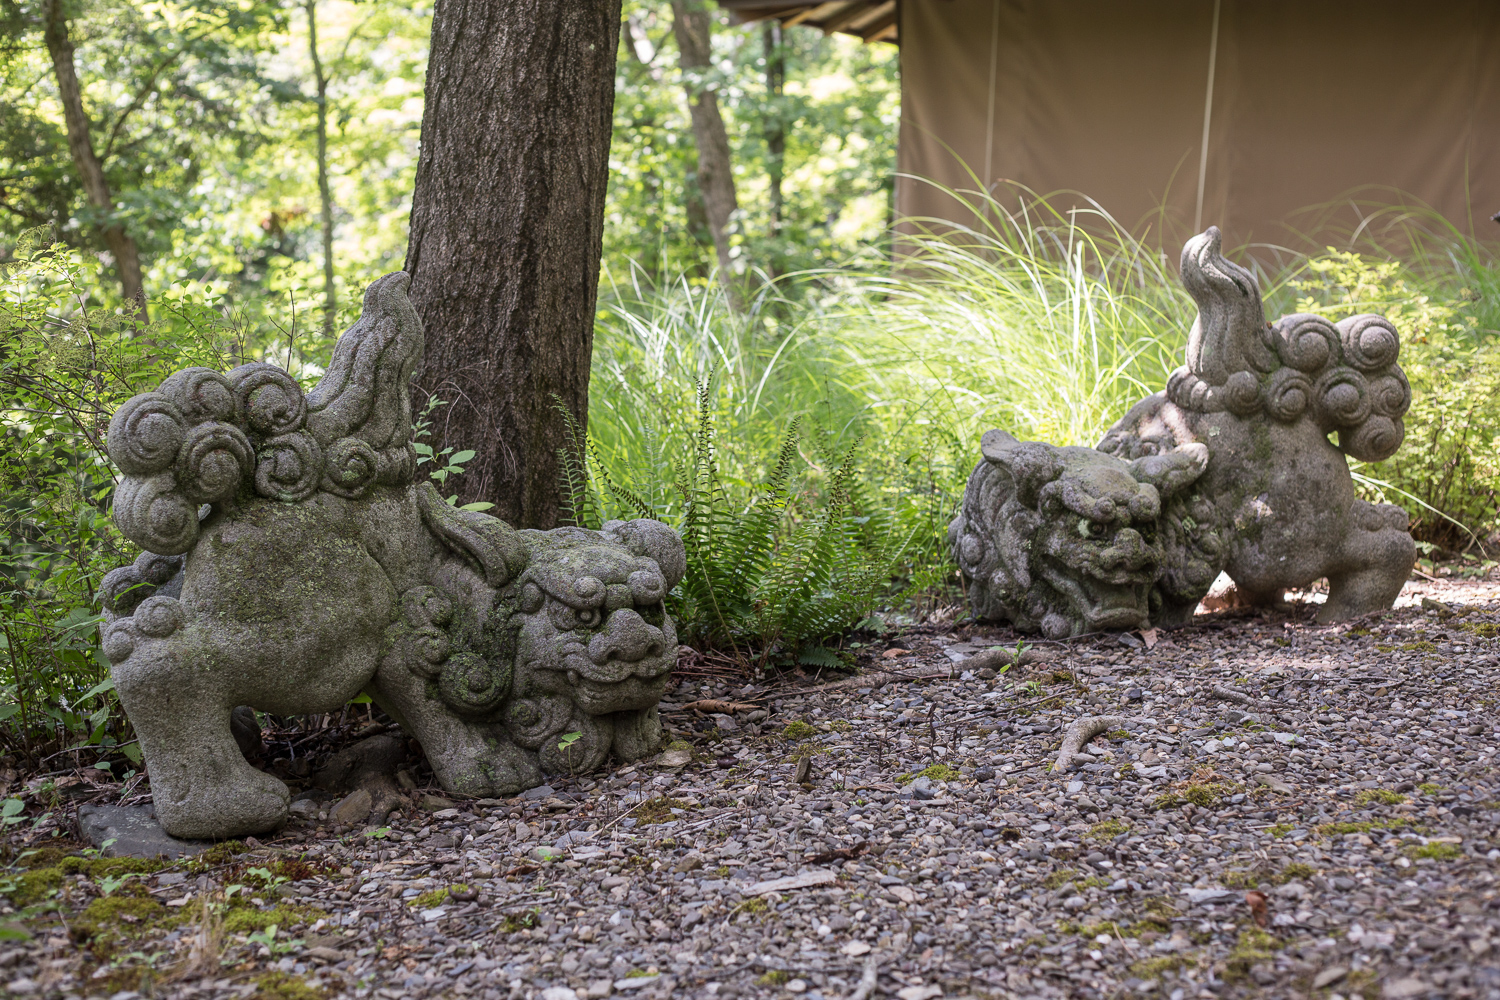 japanese sculpture, japanese antique, japanese antique sculpture. garden sculpture, japanese garden sculpture, japanese garden